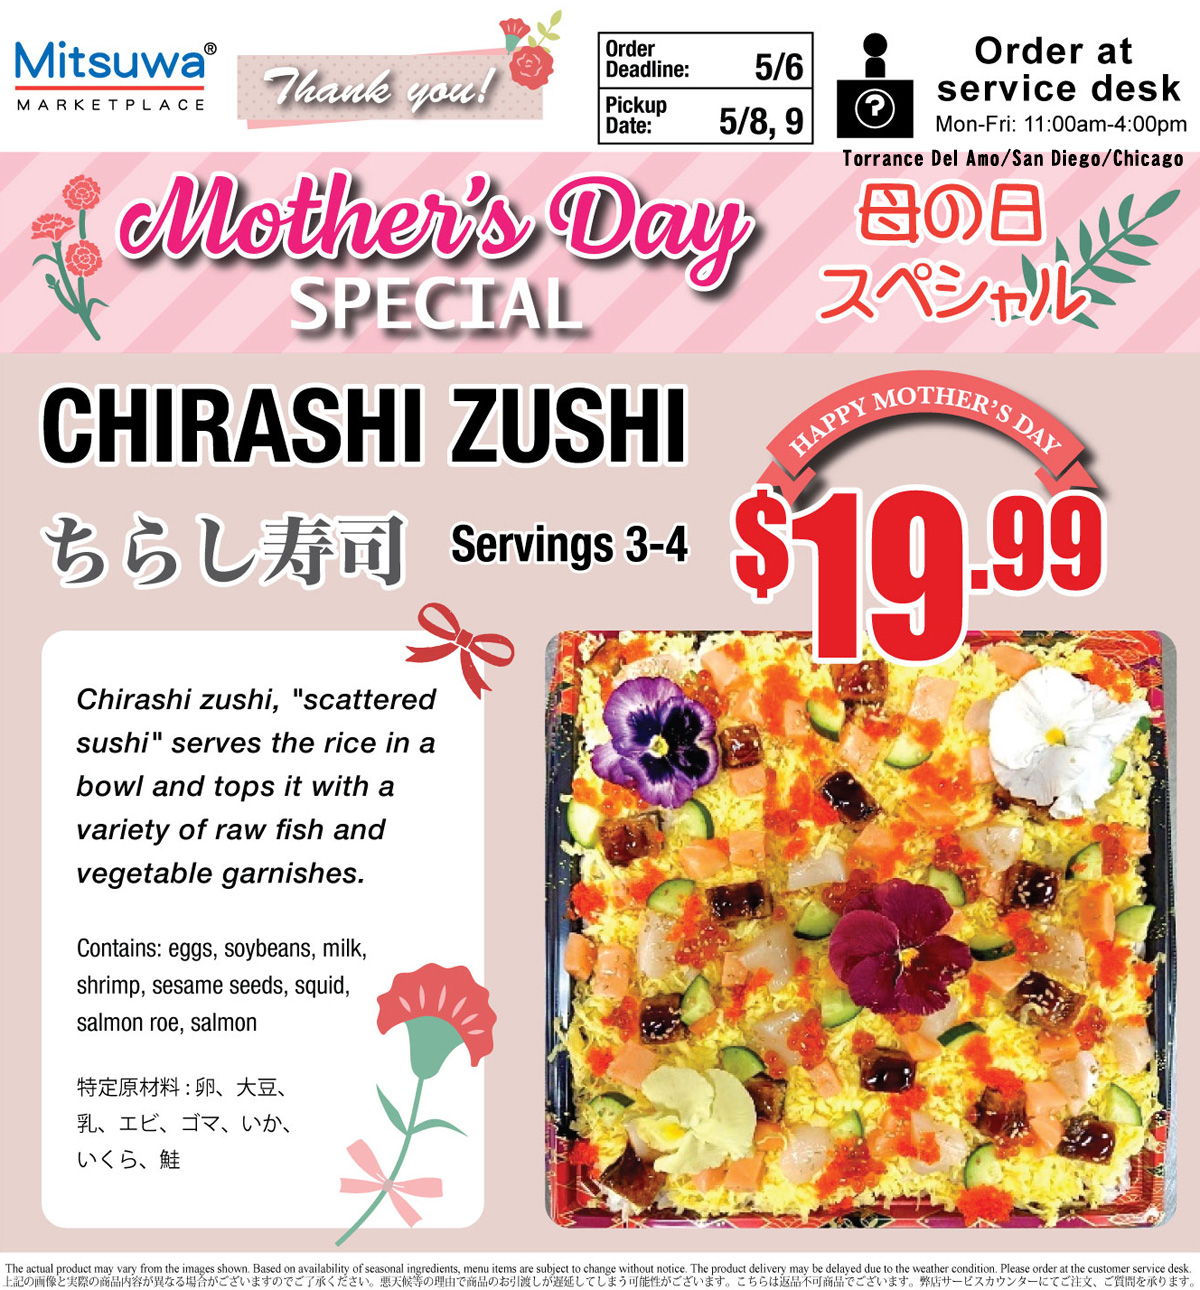 Mother's day special chirashi zushi